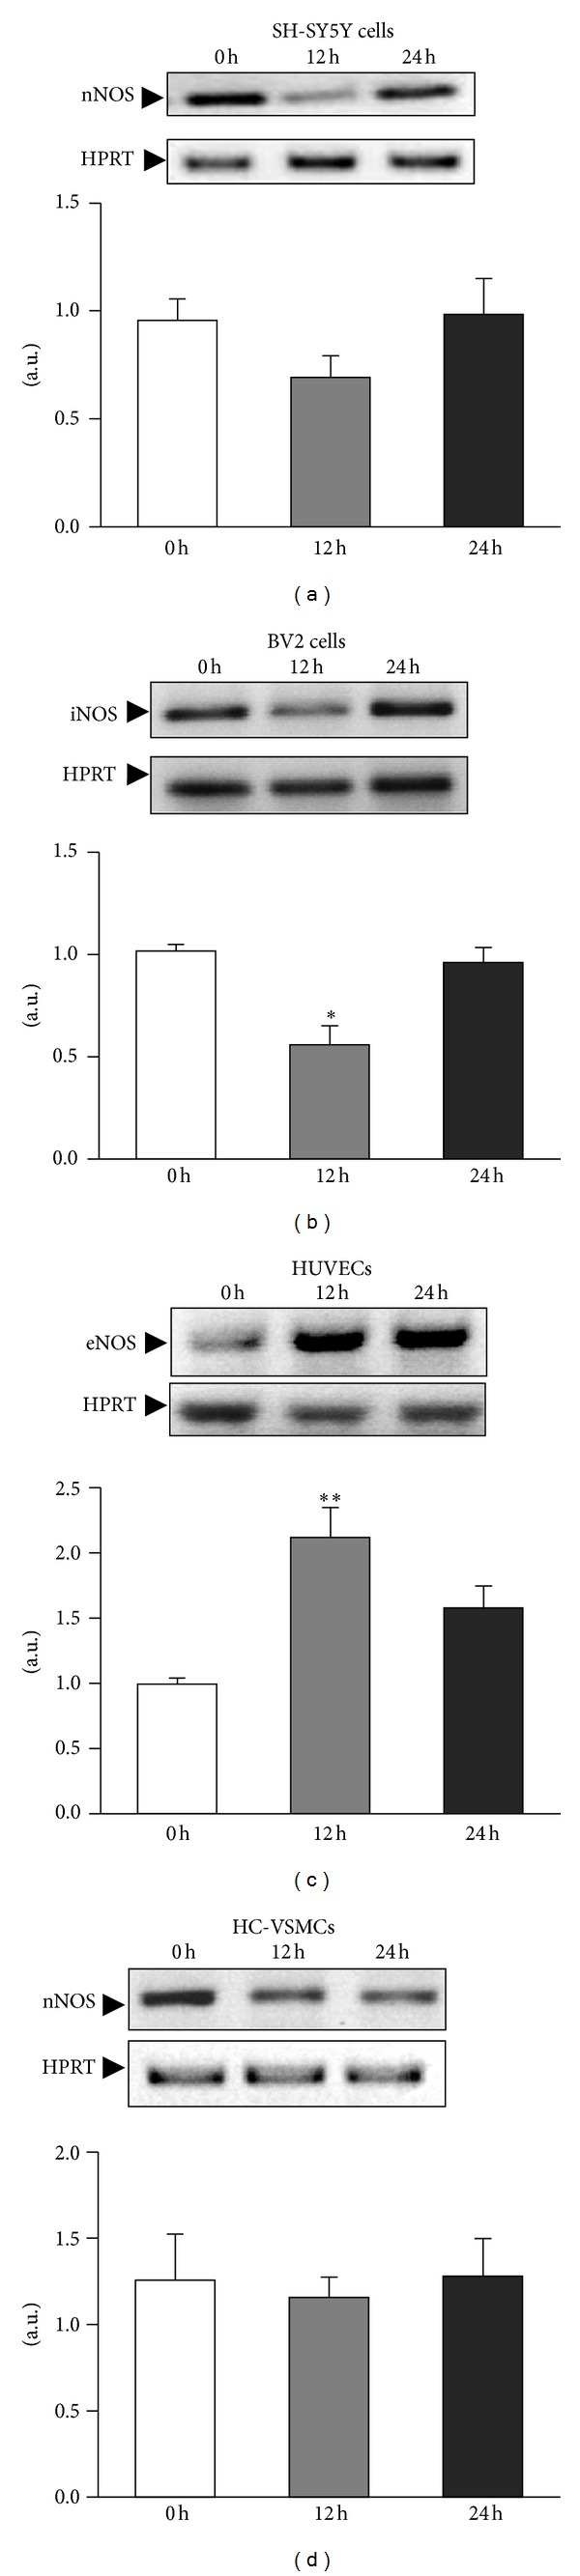 Differential expression of mRNA NOS types occurs in different cell types. Cells were challenged with ischemia, and iNOS , eNOS, and nNOS mRNA expression were studied immediately at time 0, 12 and 24 h after the ischemic challenge. The expression of mRNA was assessed by semiquantitative RT-PCR, and bands were quantified by HPRT densitometric analysis in all cell types. Data are mean ± SEM values of 3 experiments in all cell types. * P